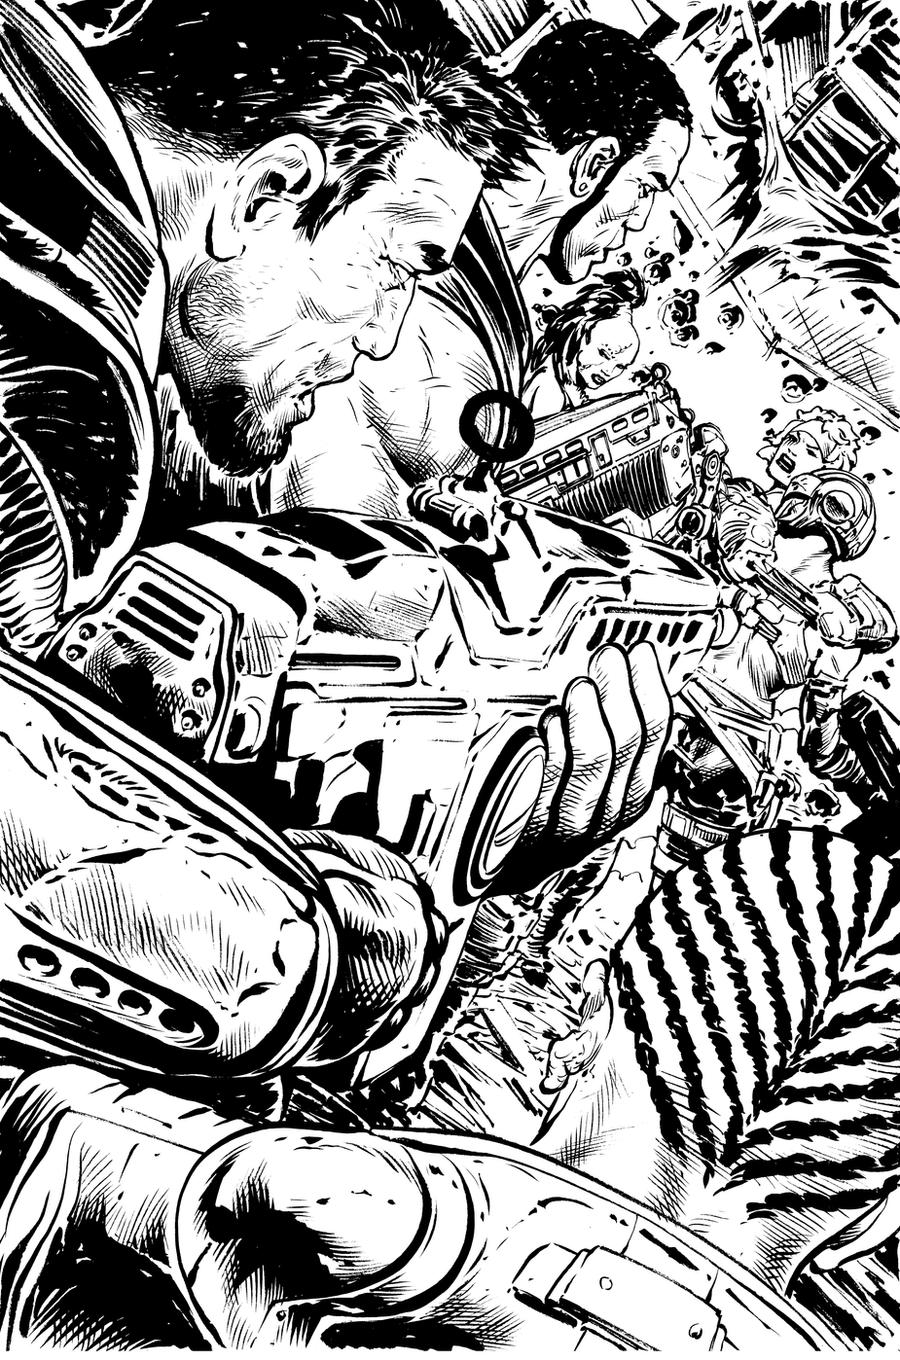 Adult Top Gears Of War Coloring Pages Gallery Images best gears of war issue 10 page 8 by liamsharp on deviantart gallery images